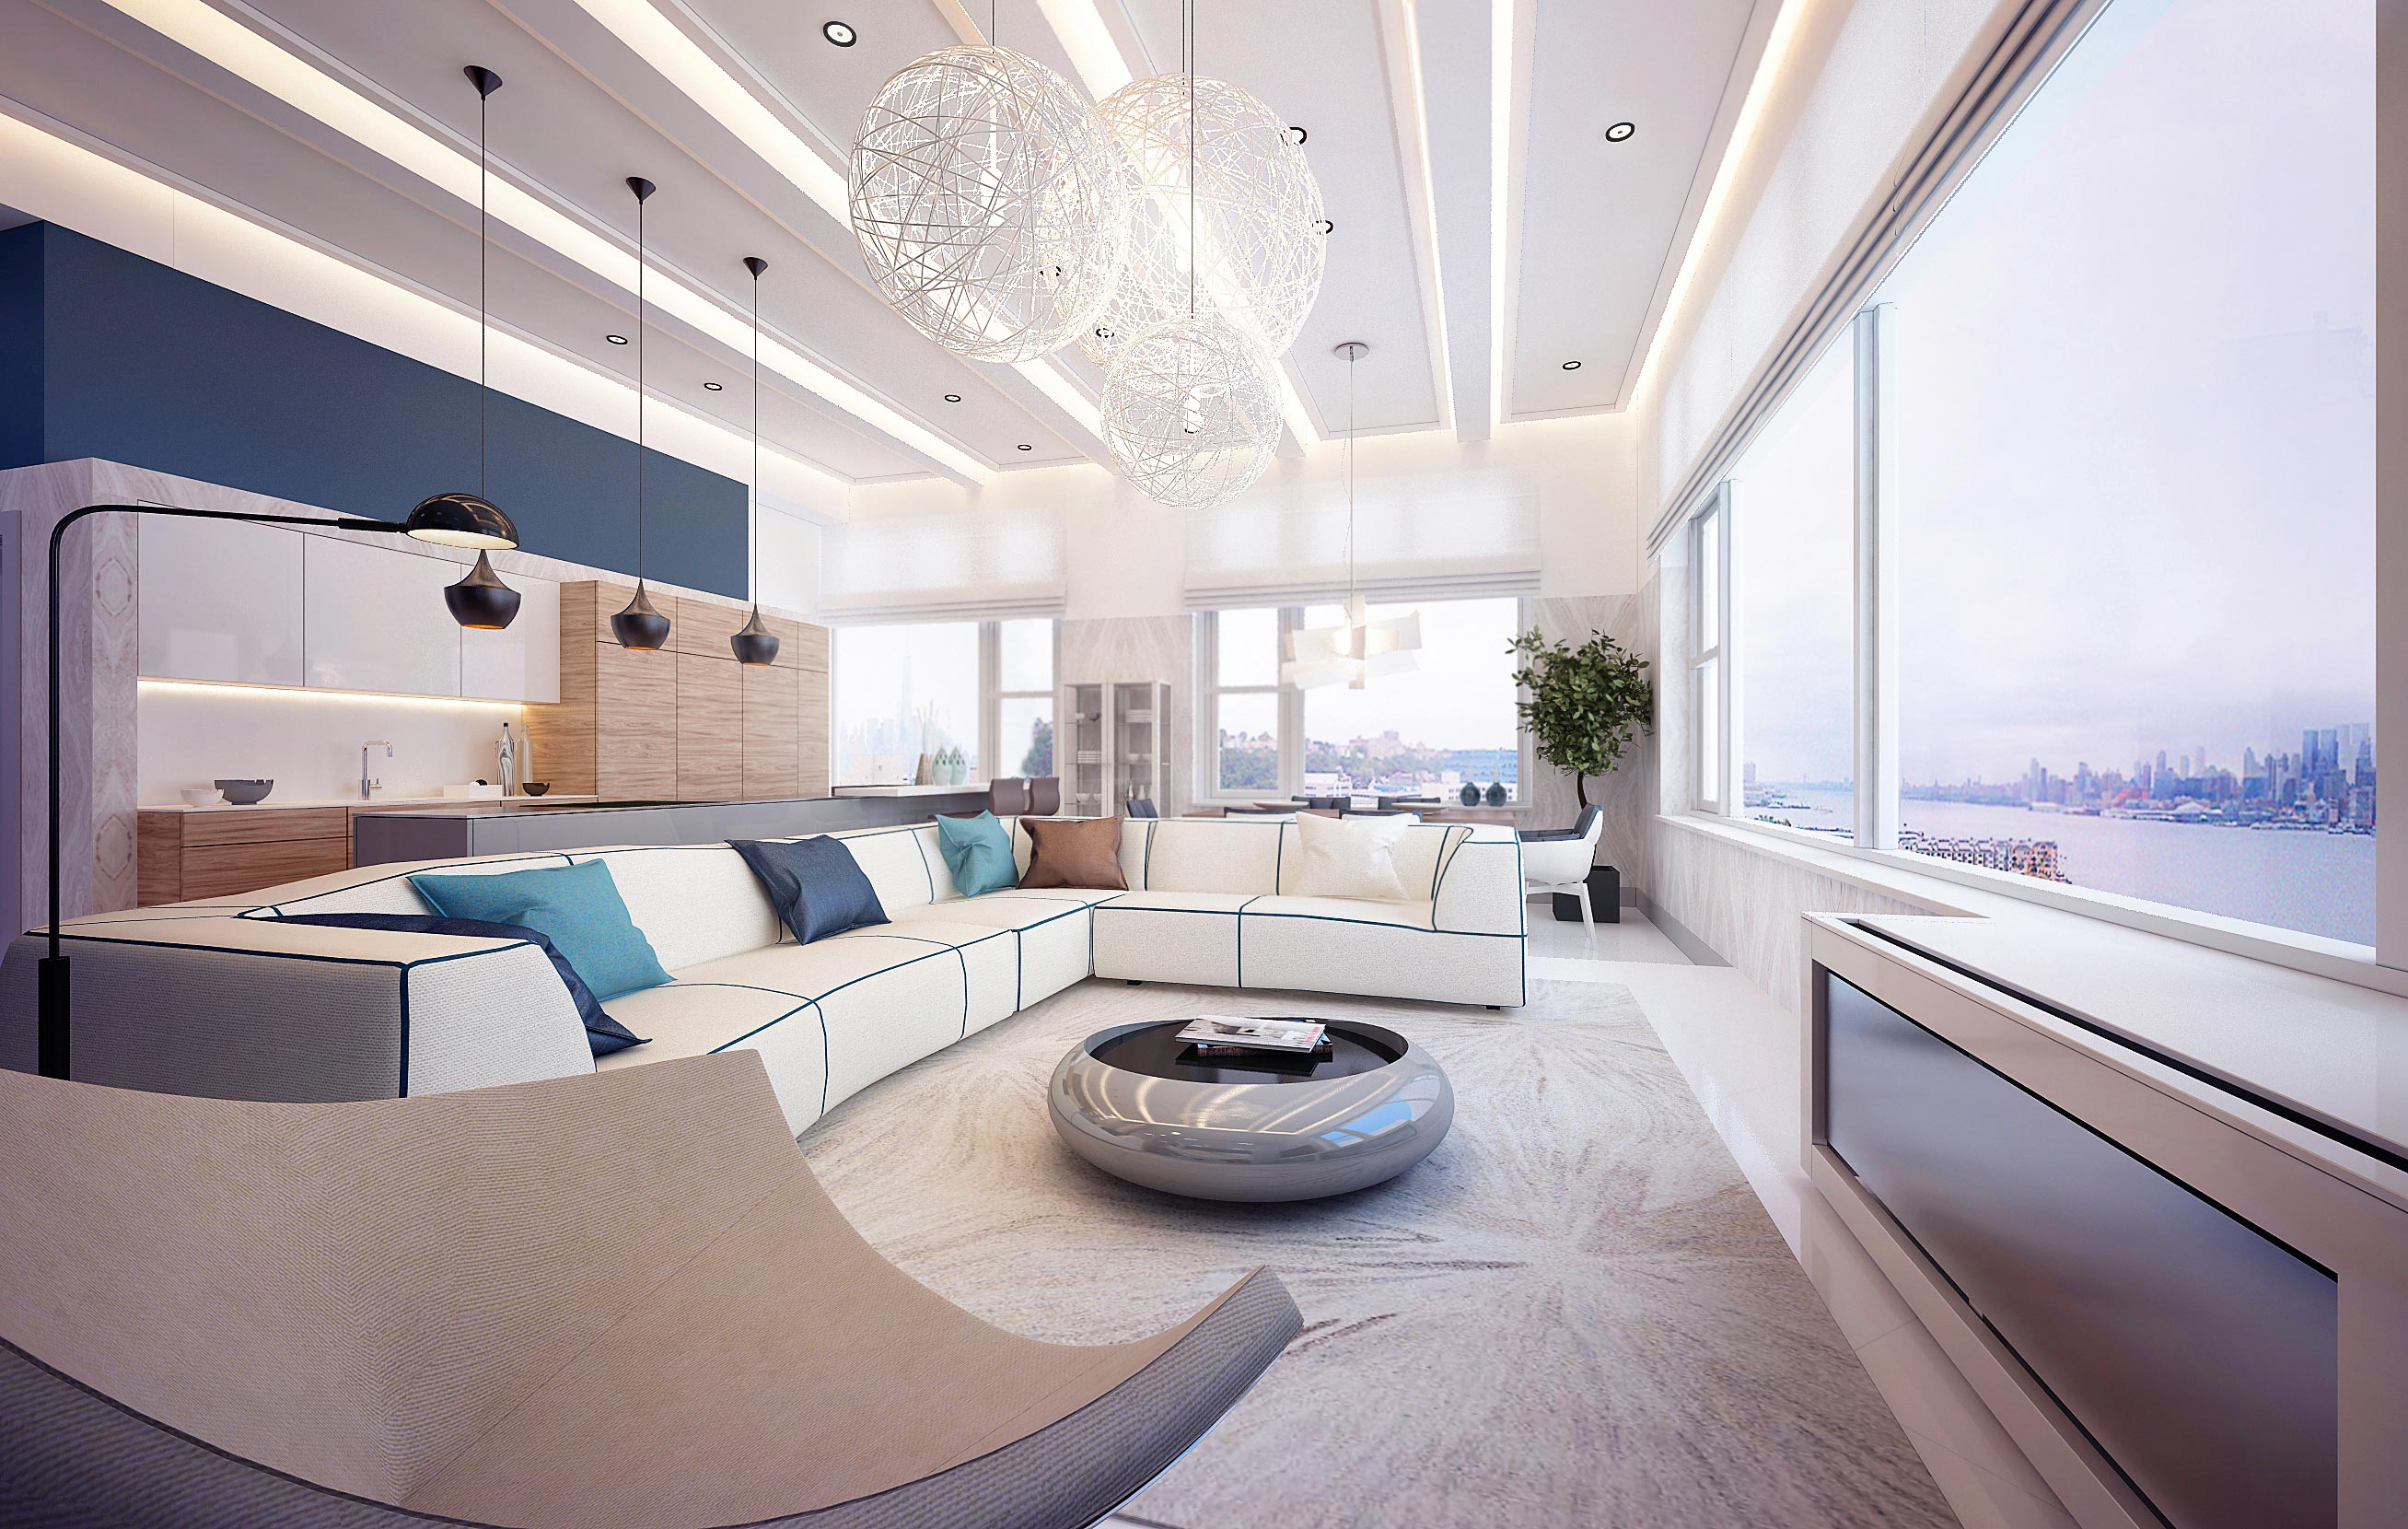 The future home by Hilit Interior Design - YouTube